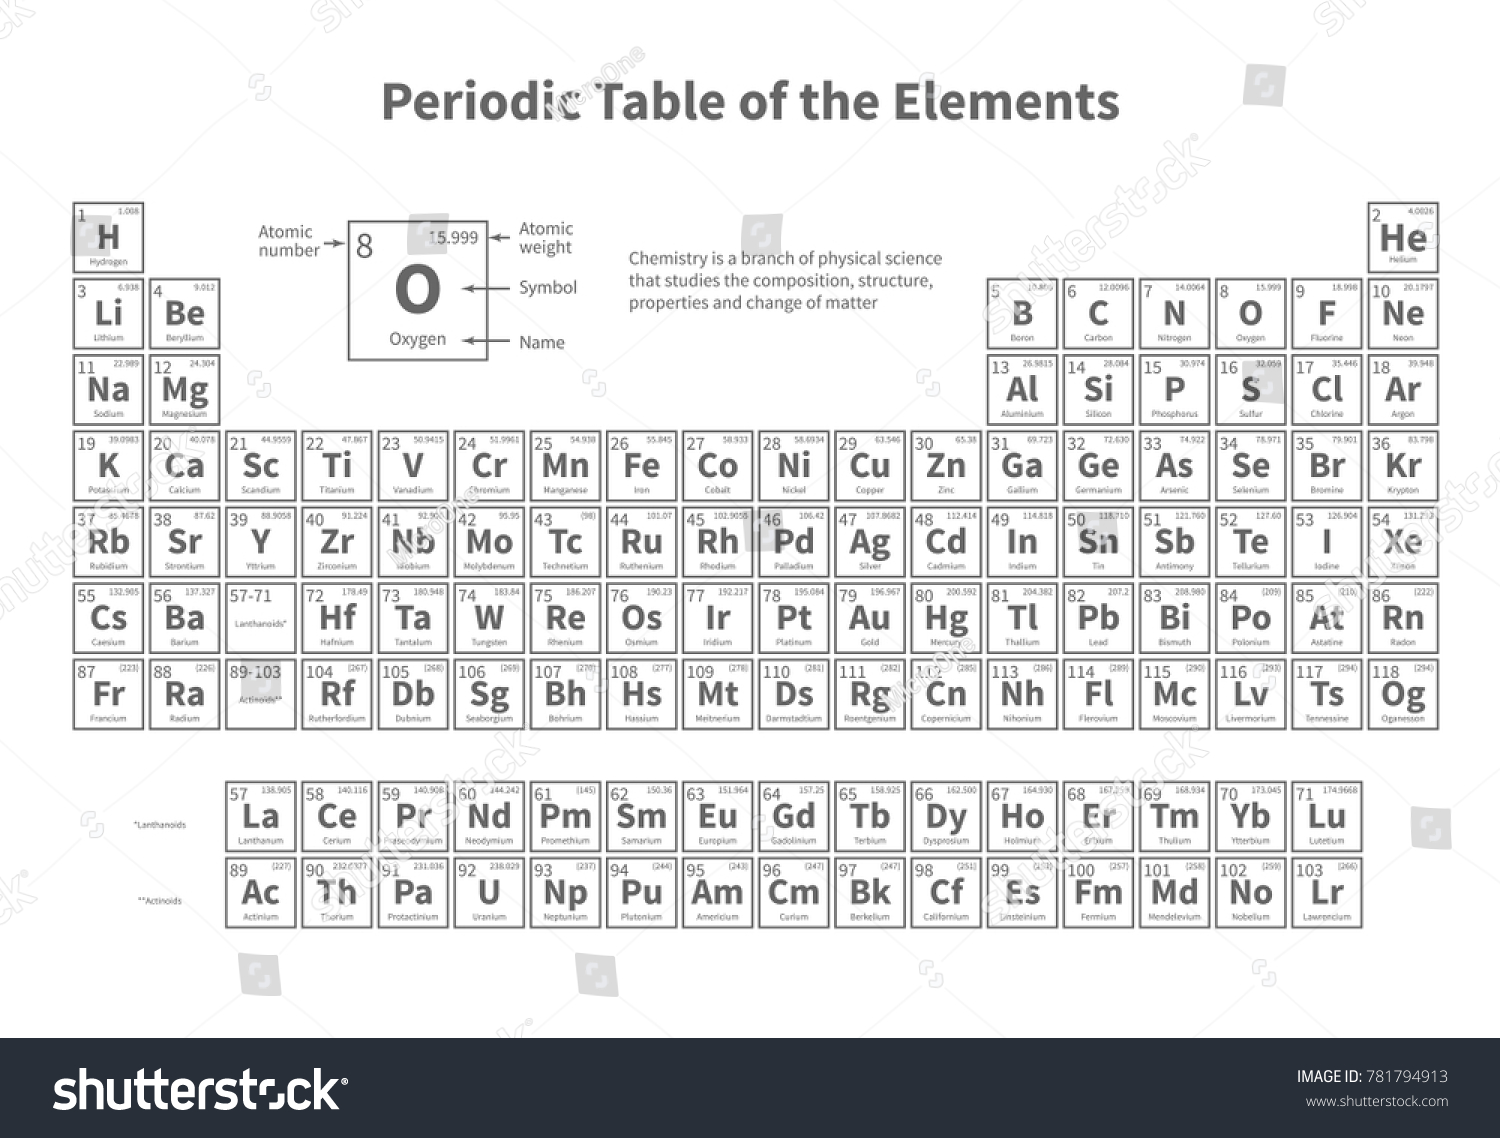 Periodic table elements template school chemistry stock periodic table of elements template for school chemistry lesson education and science element gamestrikefo Image collections